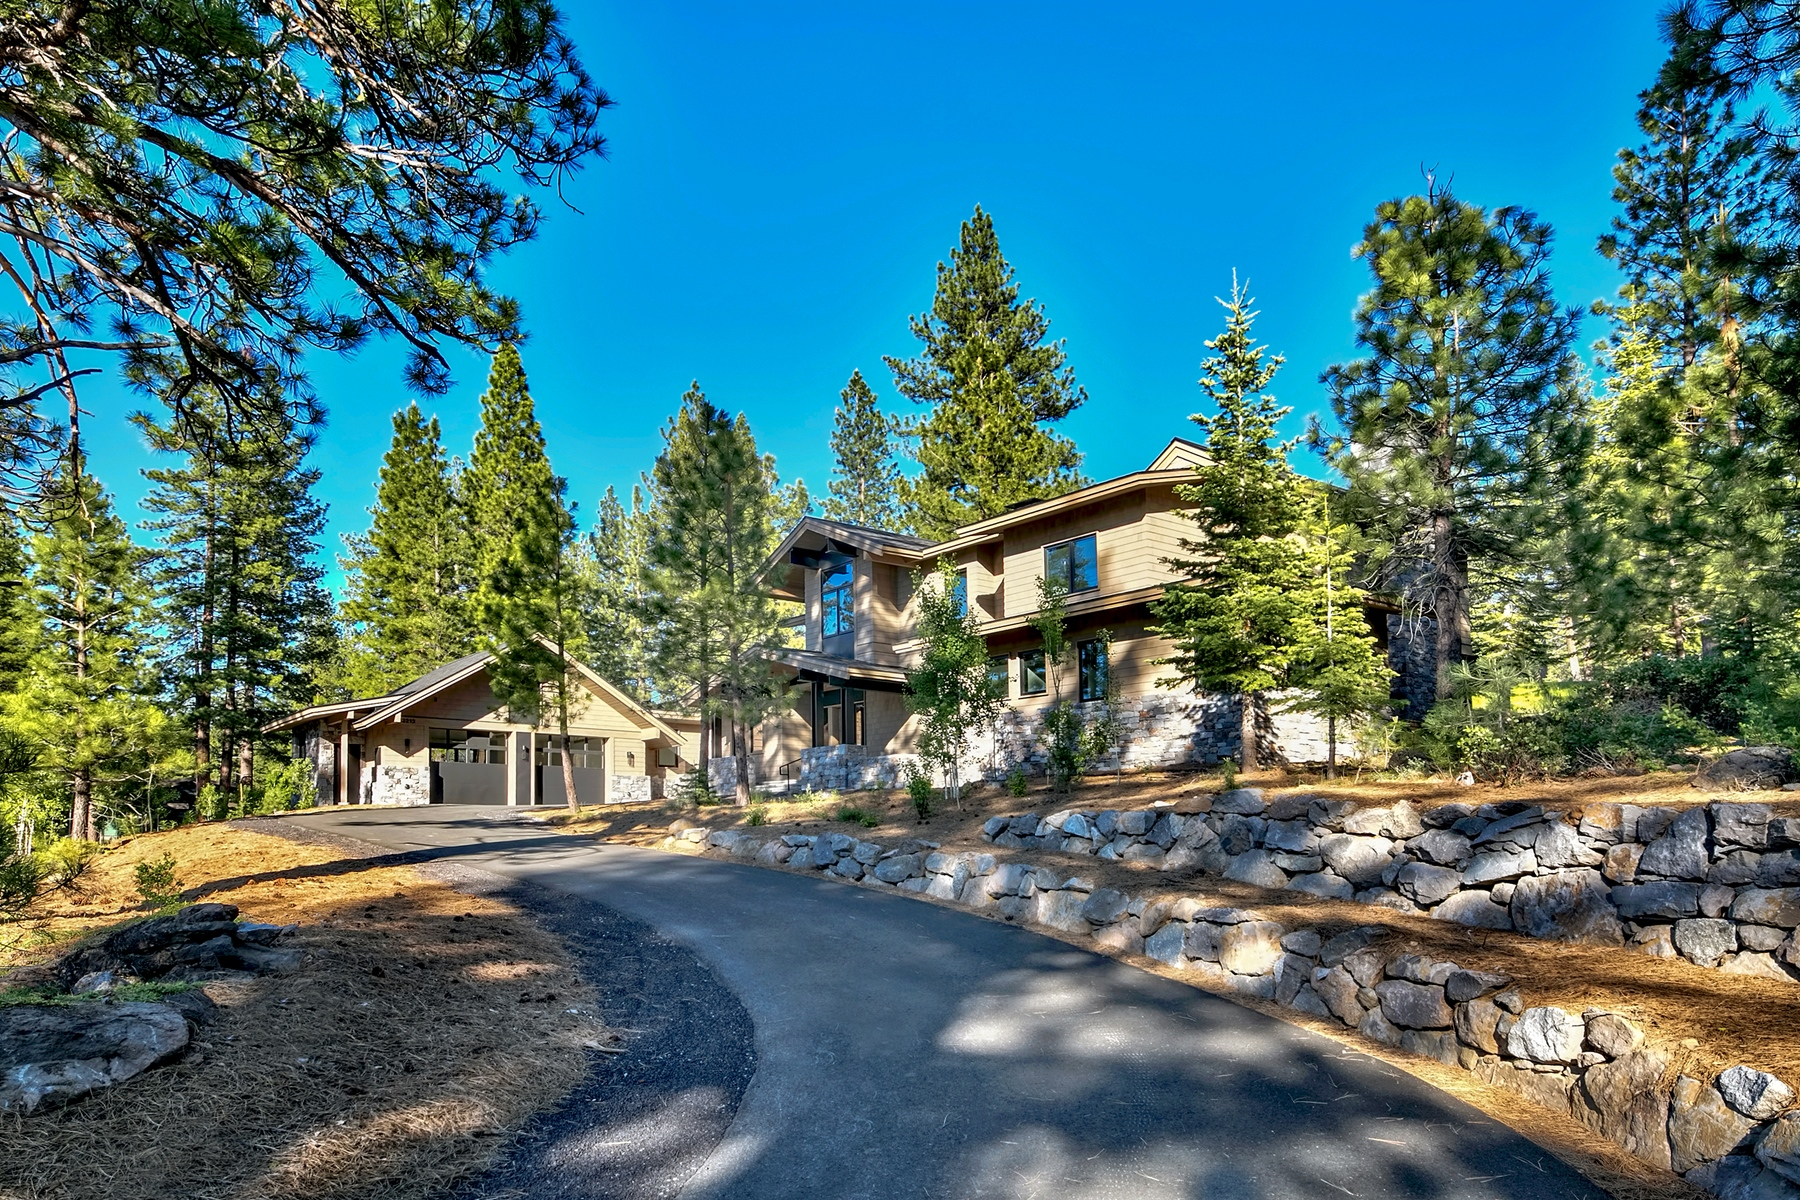 Property for Active at 13212 Snowshoe Thompson, Truckee, CA 13212 Snowshoe Thompson Circle Truckee, California 96161 United States